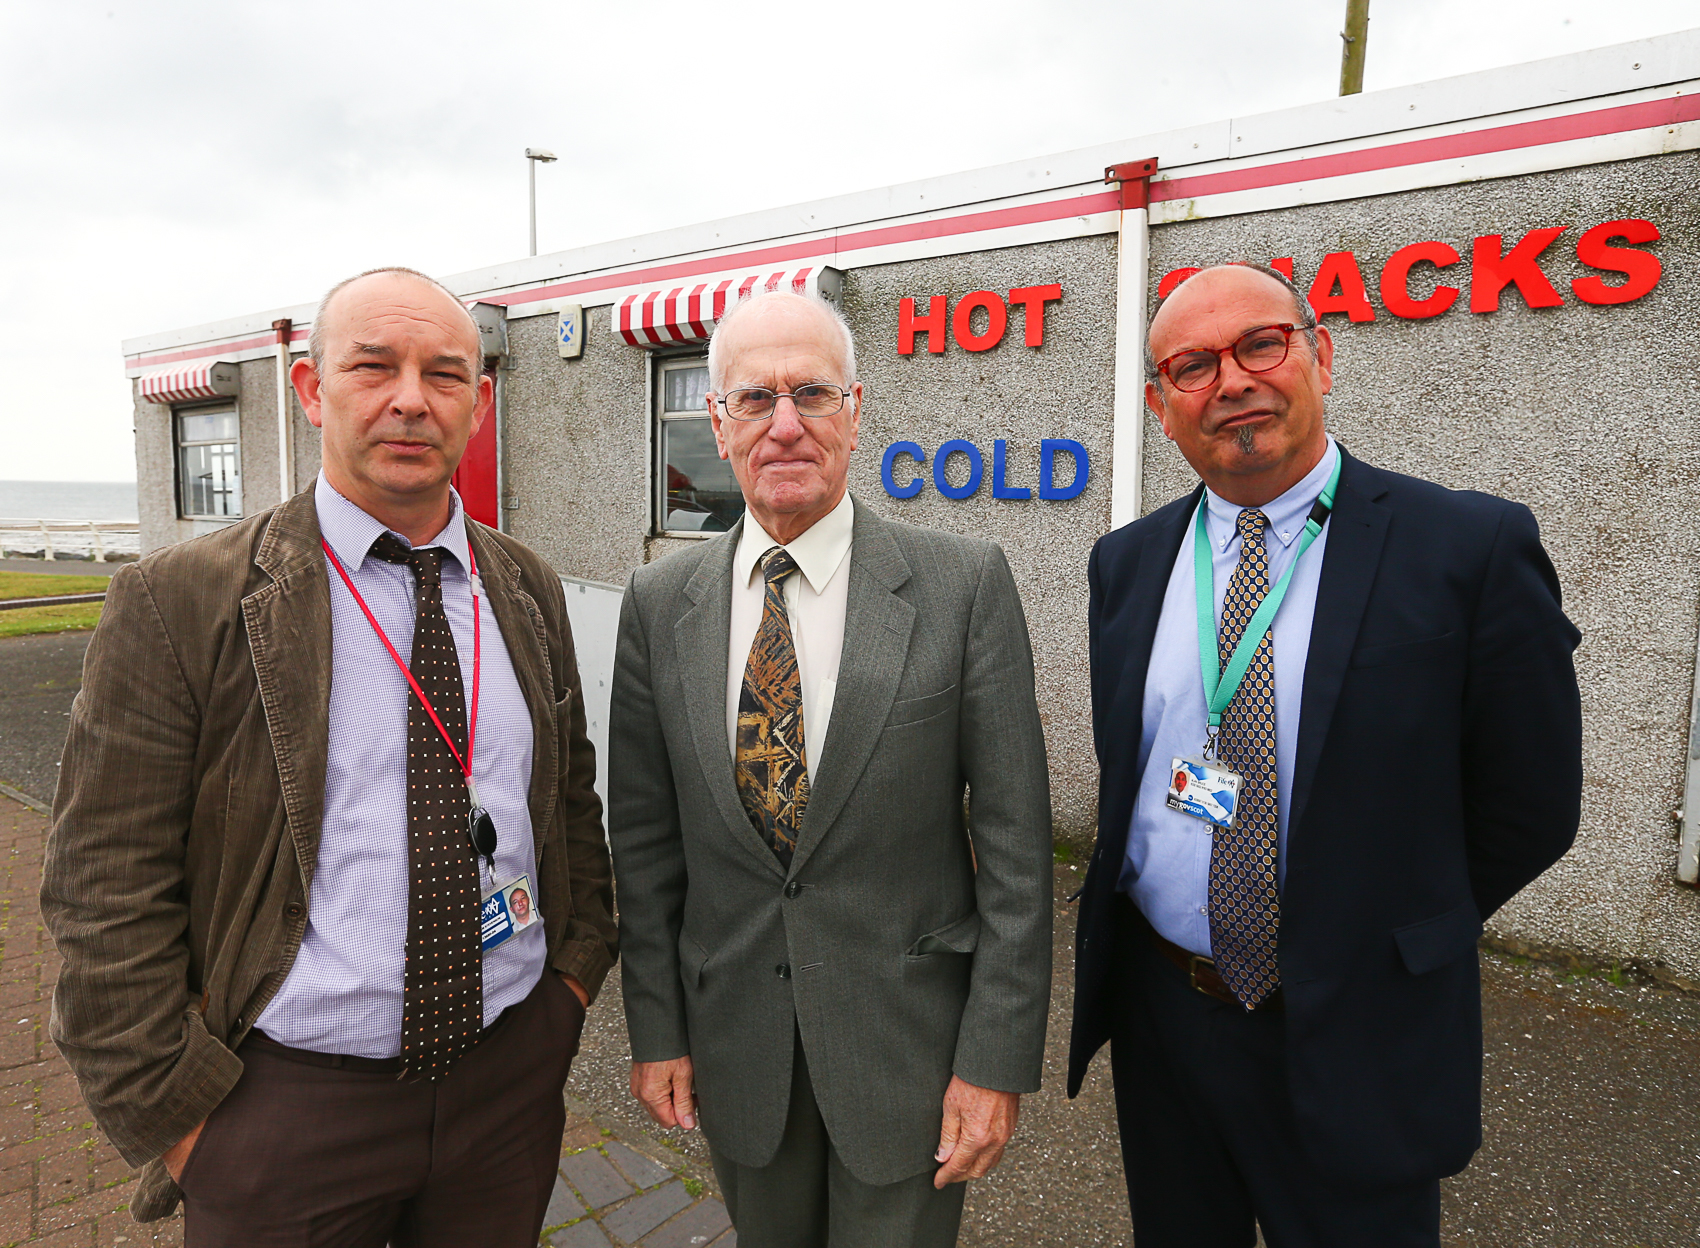 Councillor Ross Vettraino in between enforcement officers Billy Stevenson and Alan Bruce